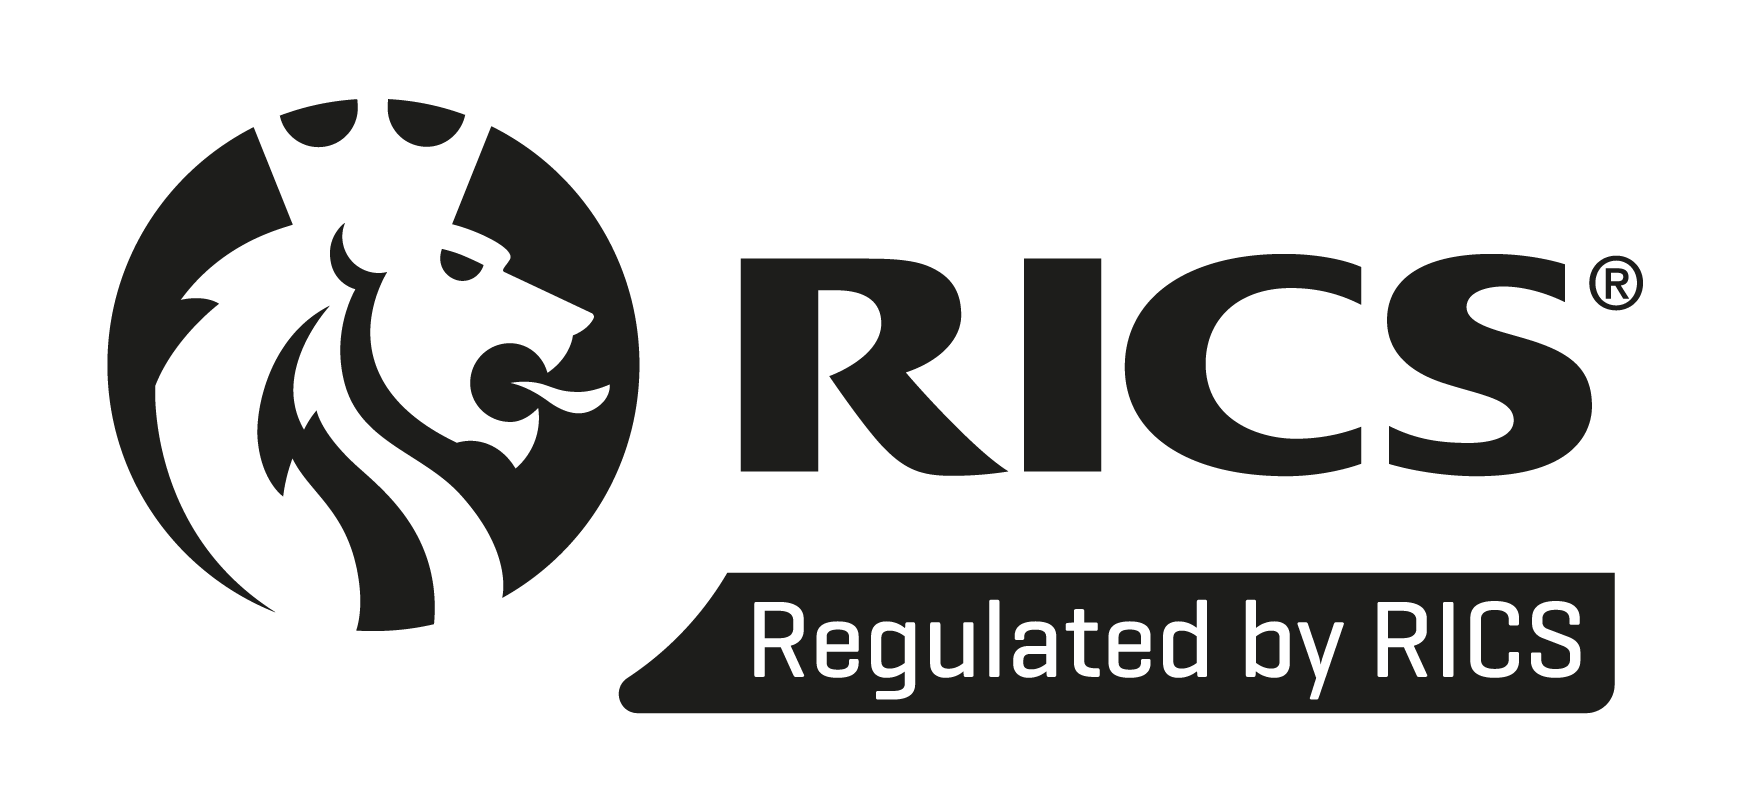 Regulated by RICS. MFG Chartered Building Surveyors in London.